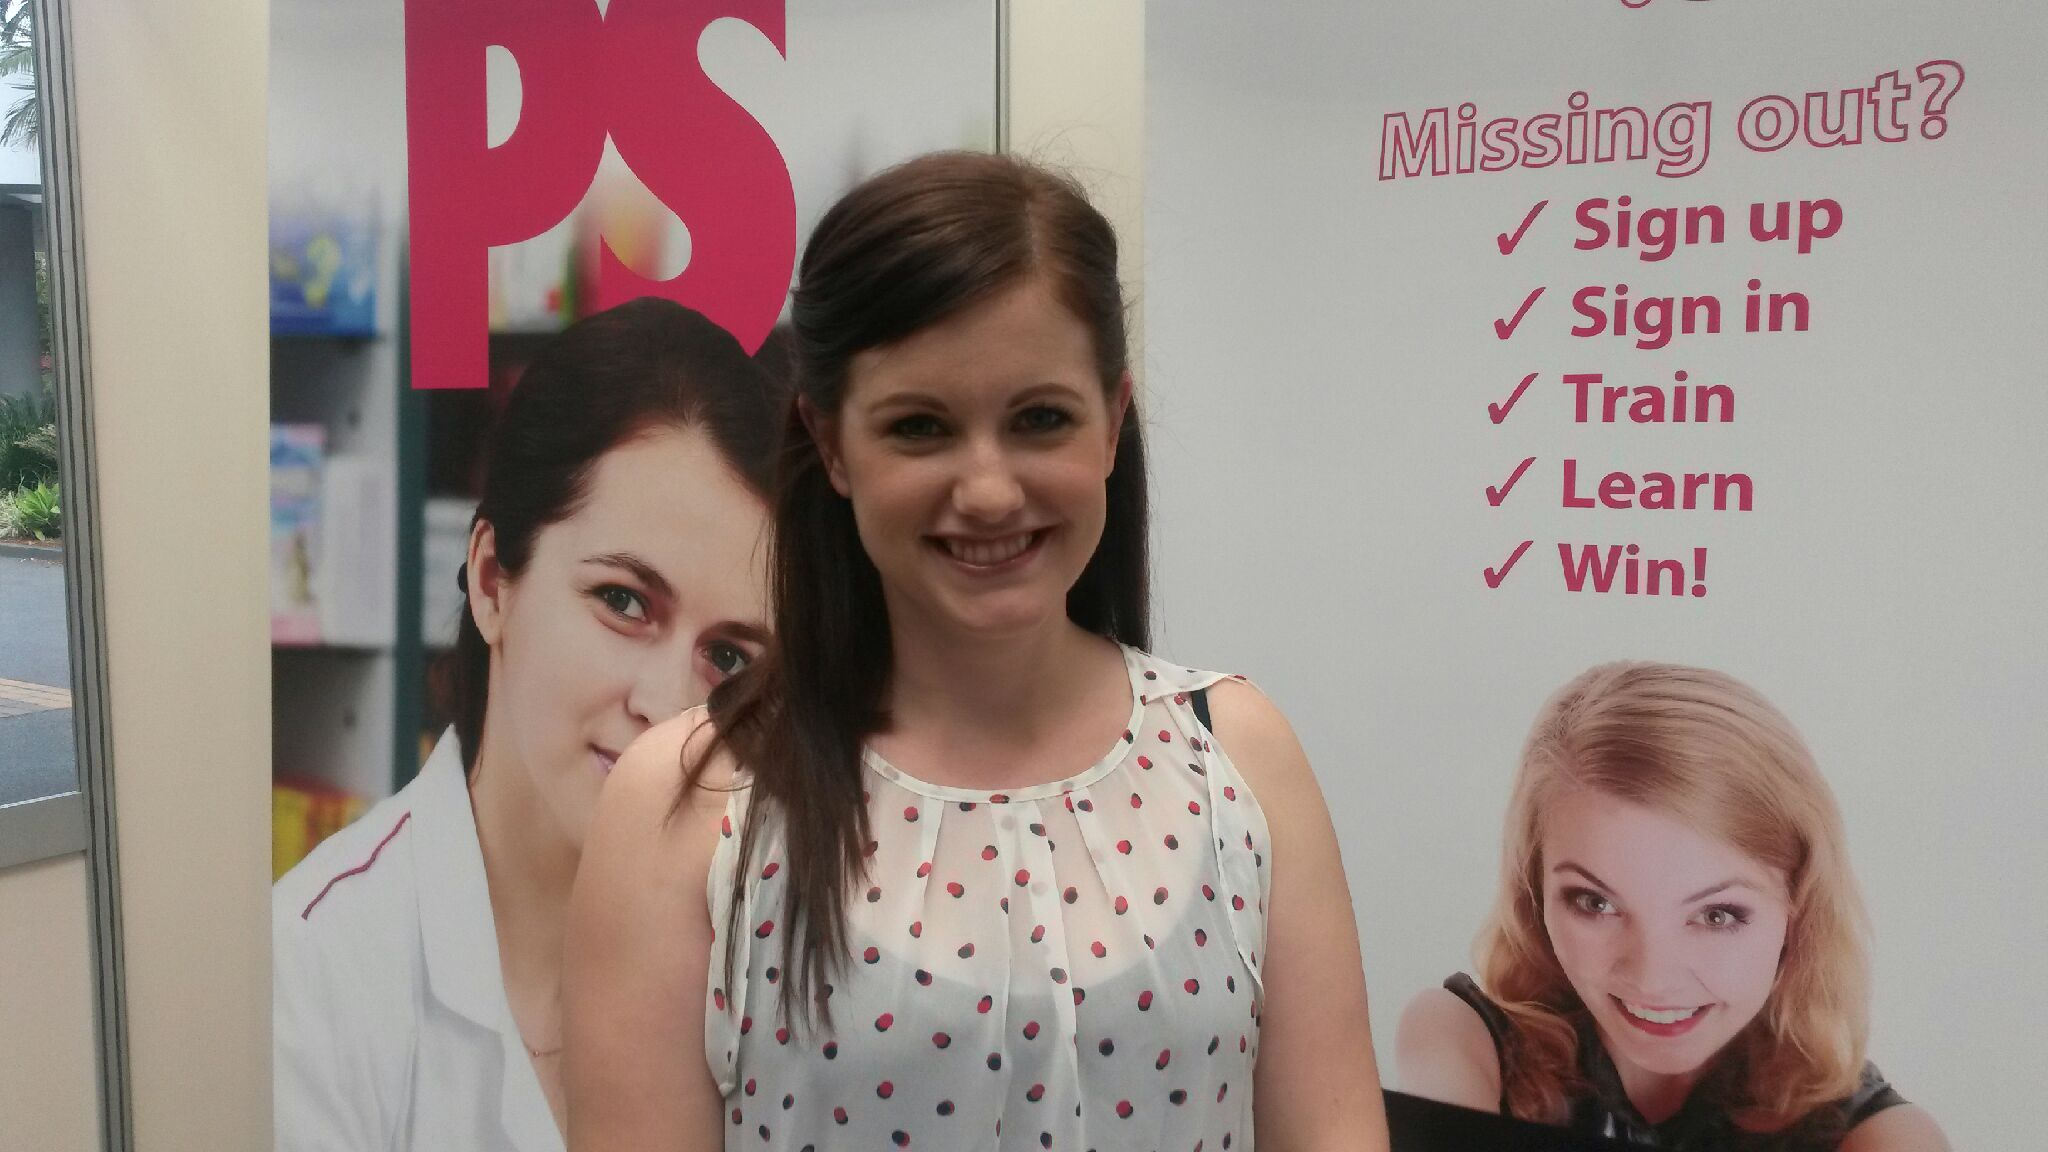 pharmacy assistant of the year 2014 Dimity Doddridge at the Post Script stand